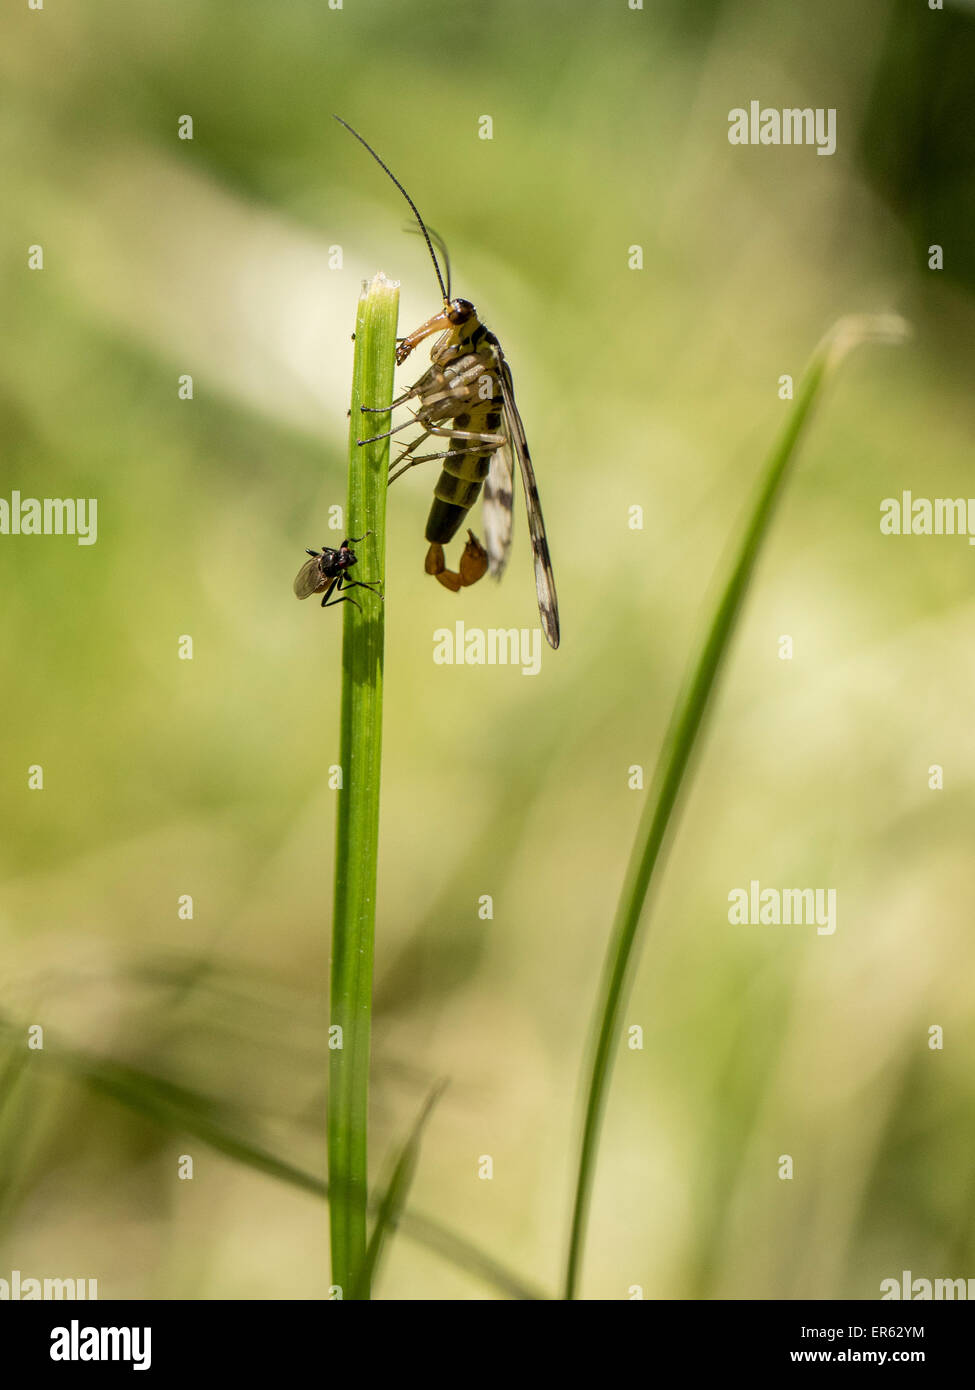 Common Scorpionfly (Panorpa communis), male, Saxony-Anhalt, Germany Stock Photo